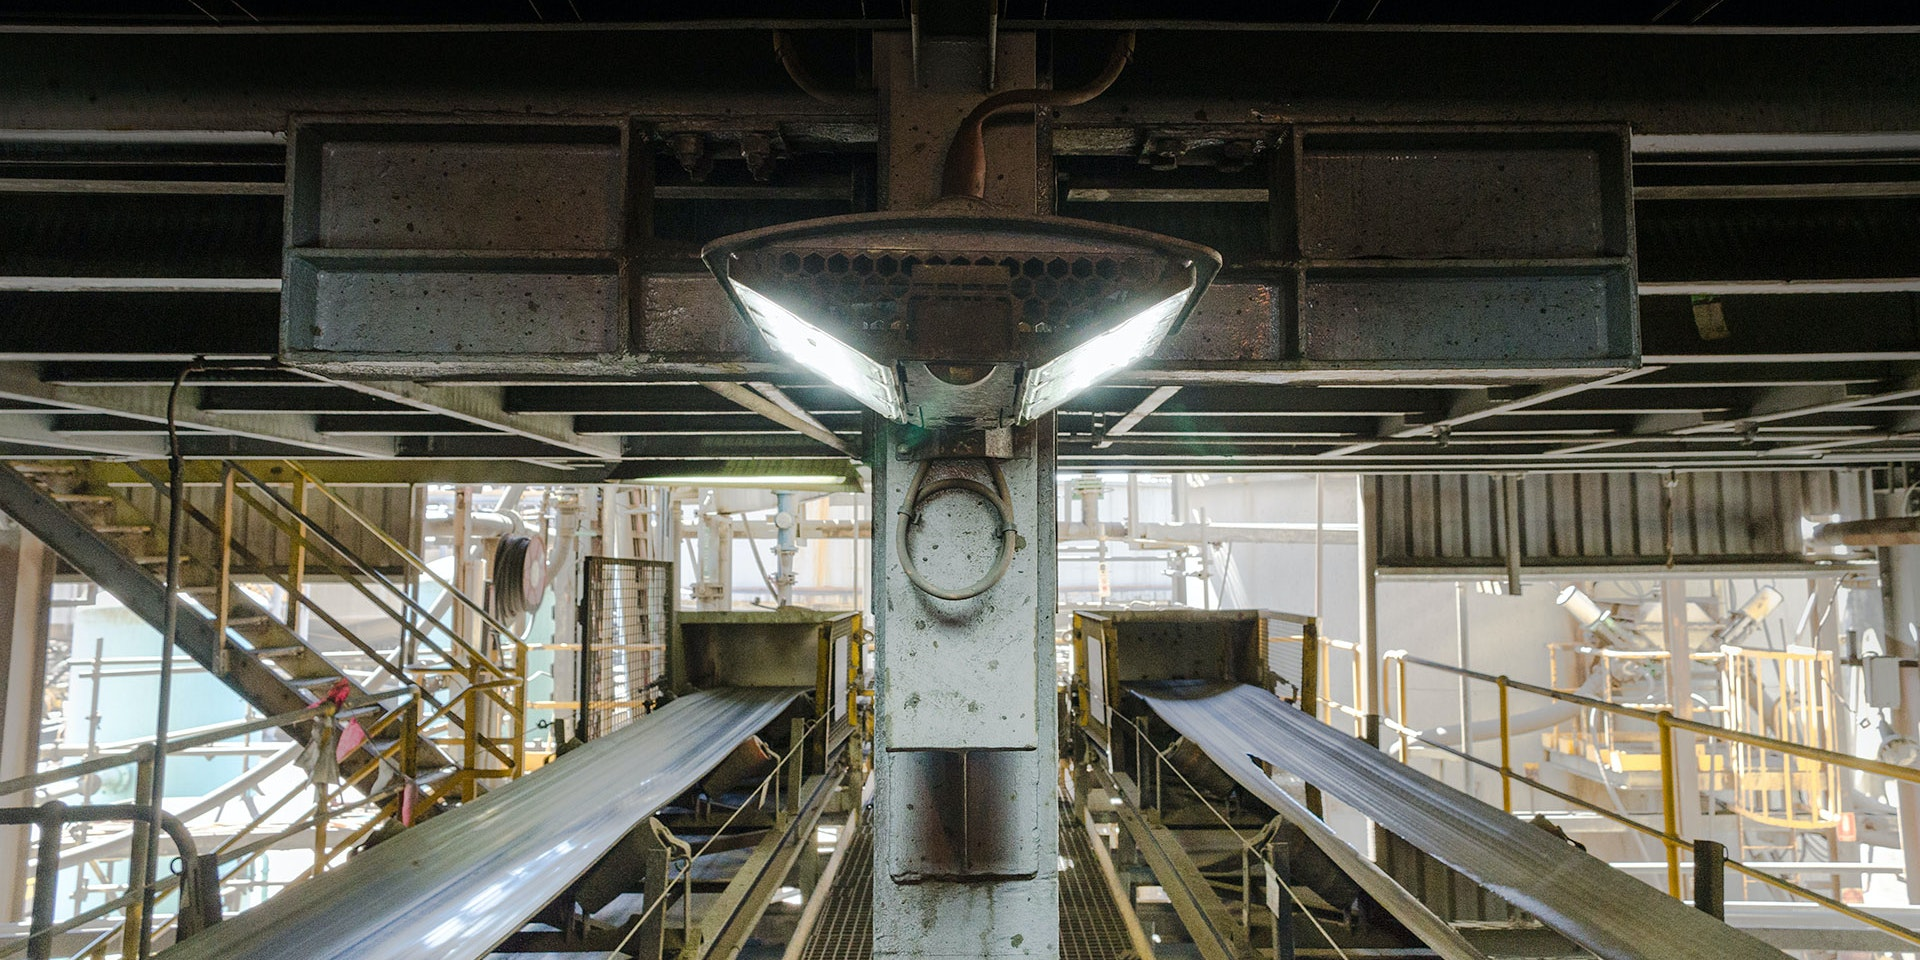 DLK LED Conveyor / Area Light in application, installed on a conveyor fixed plant,on a CHPP coal washing plant